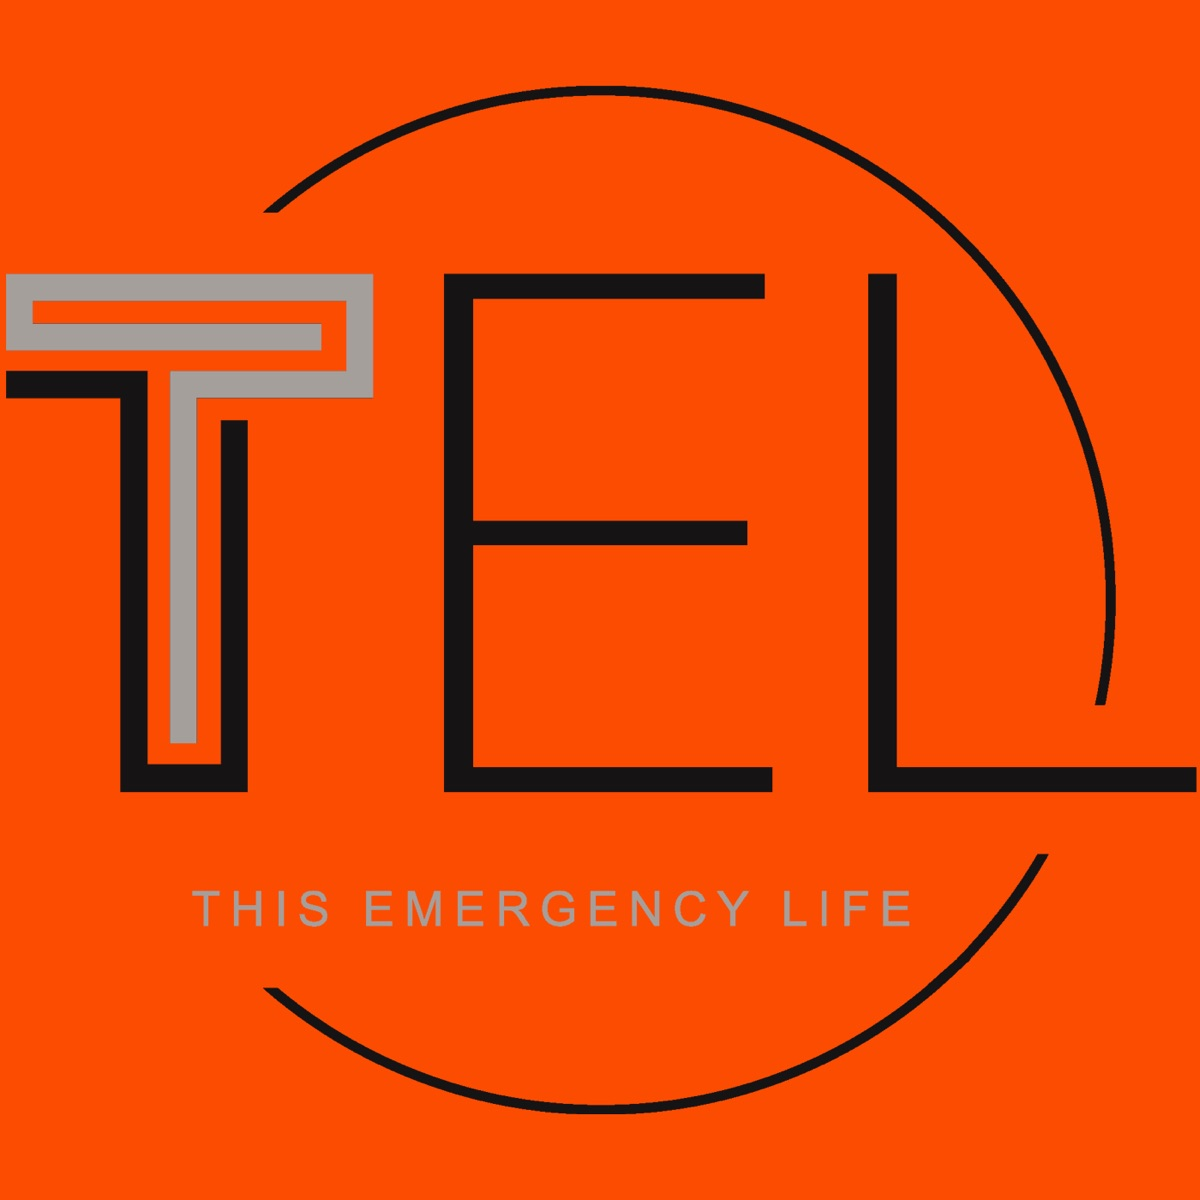 This Emergency Life